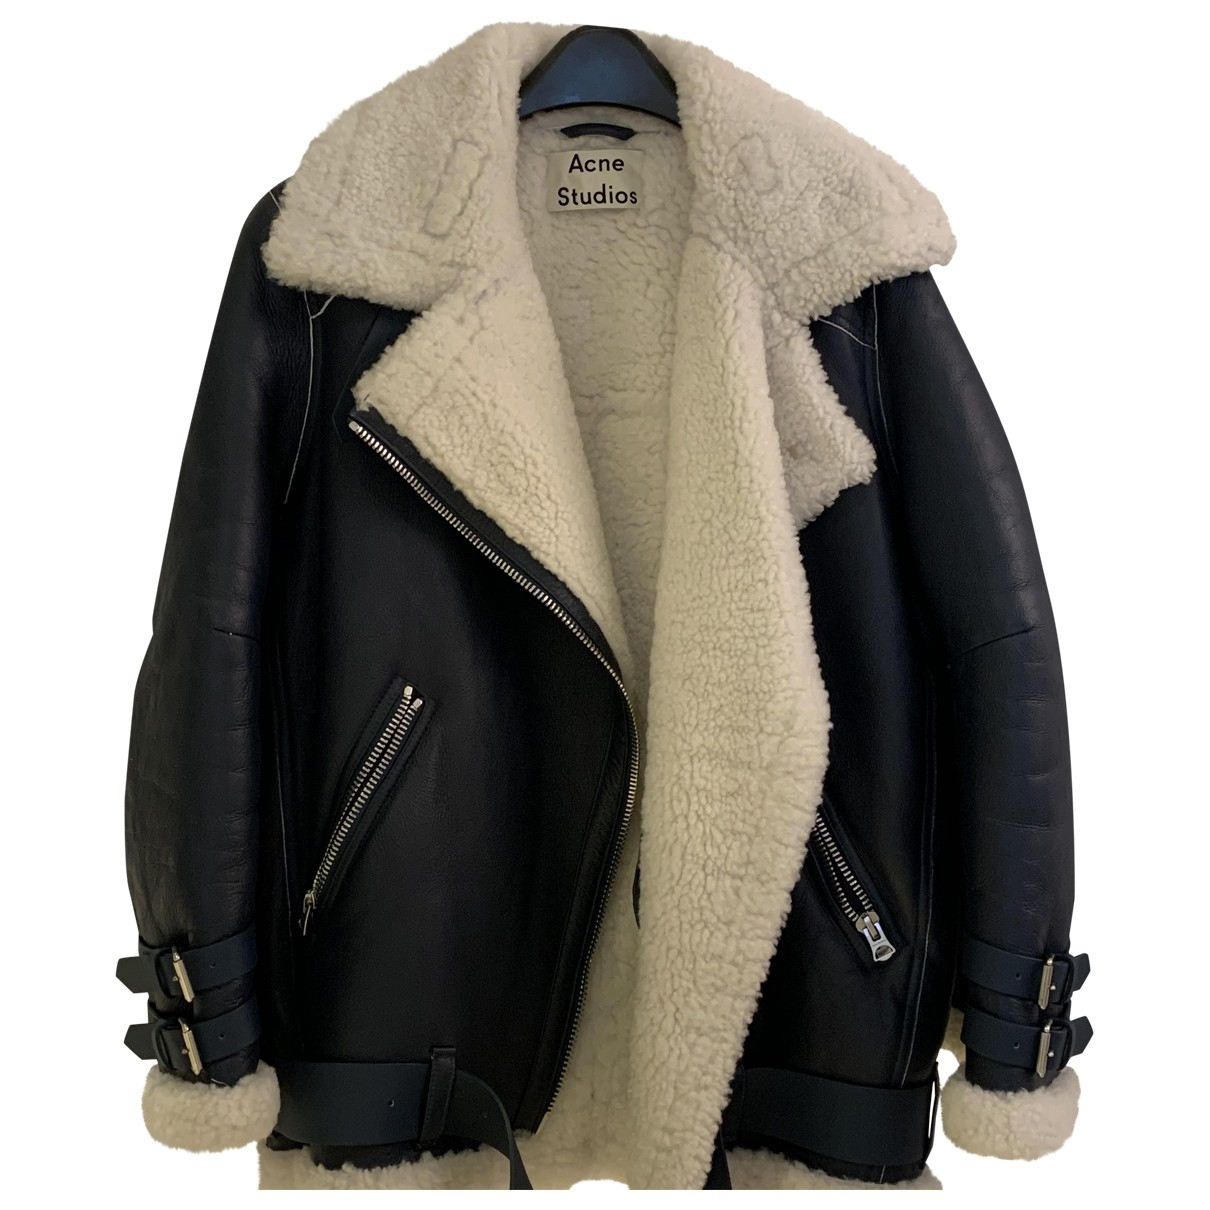 Acne Studios Velocite Navy Leather Leather jacket for Women 34 FR